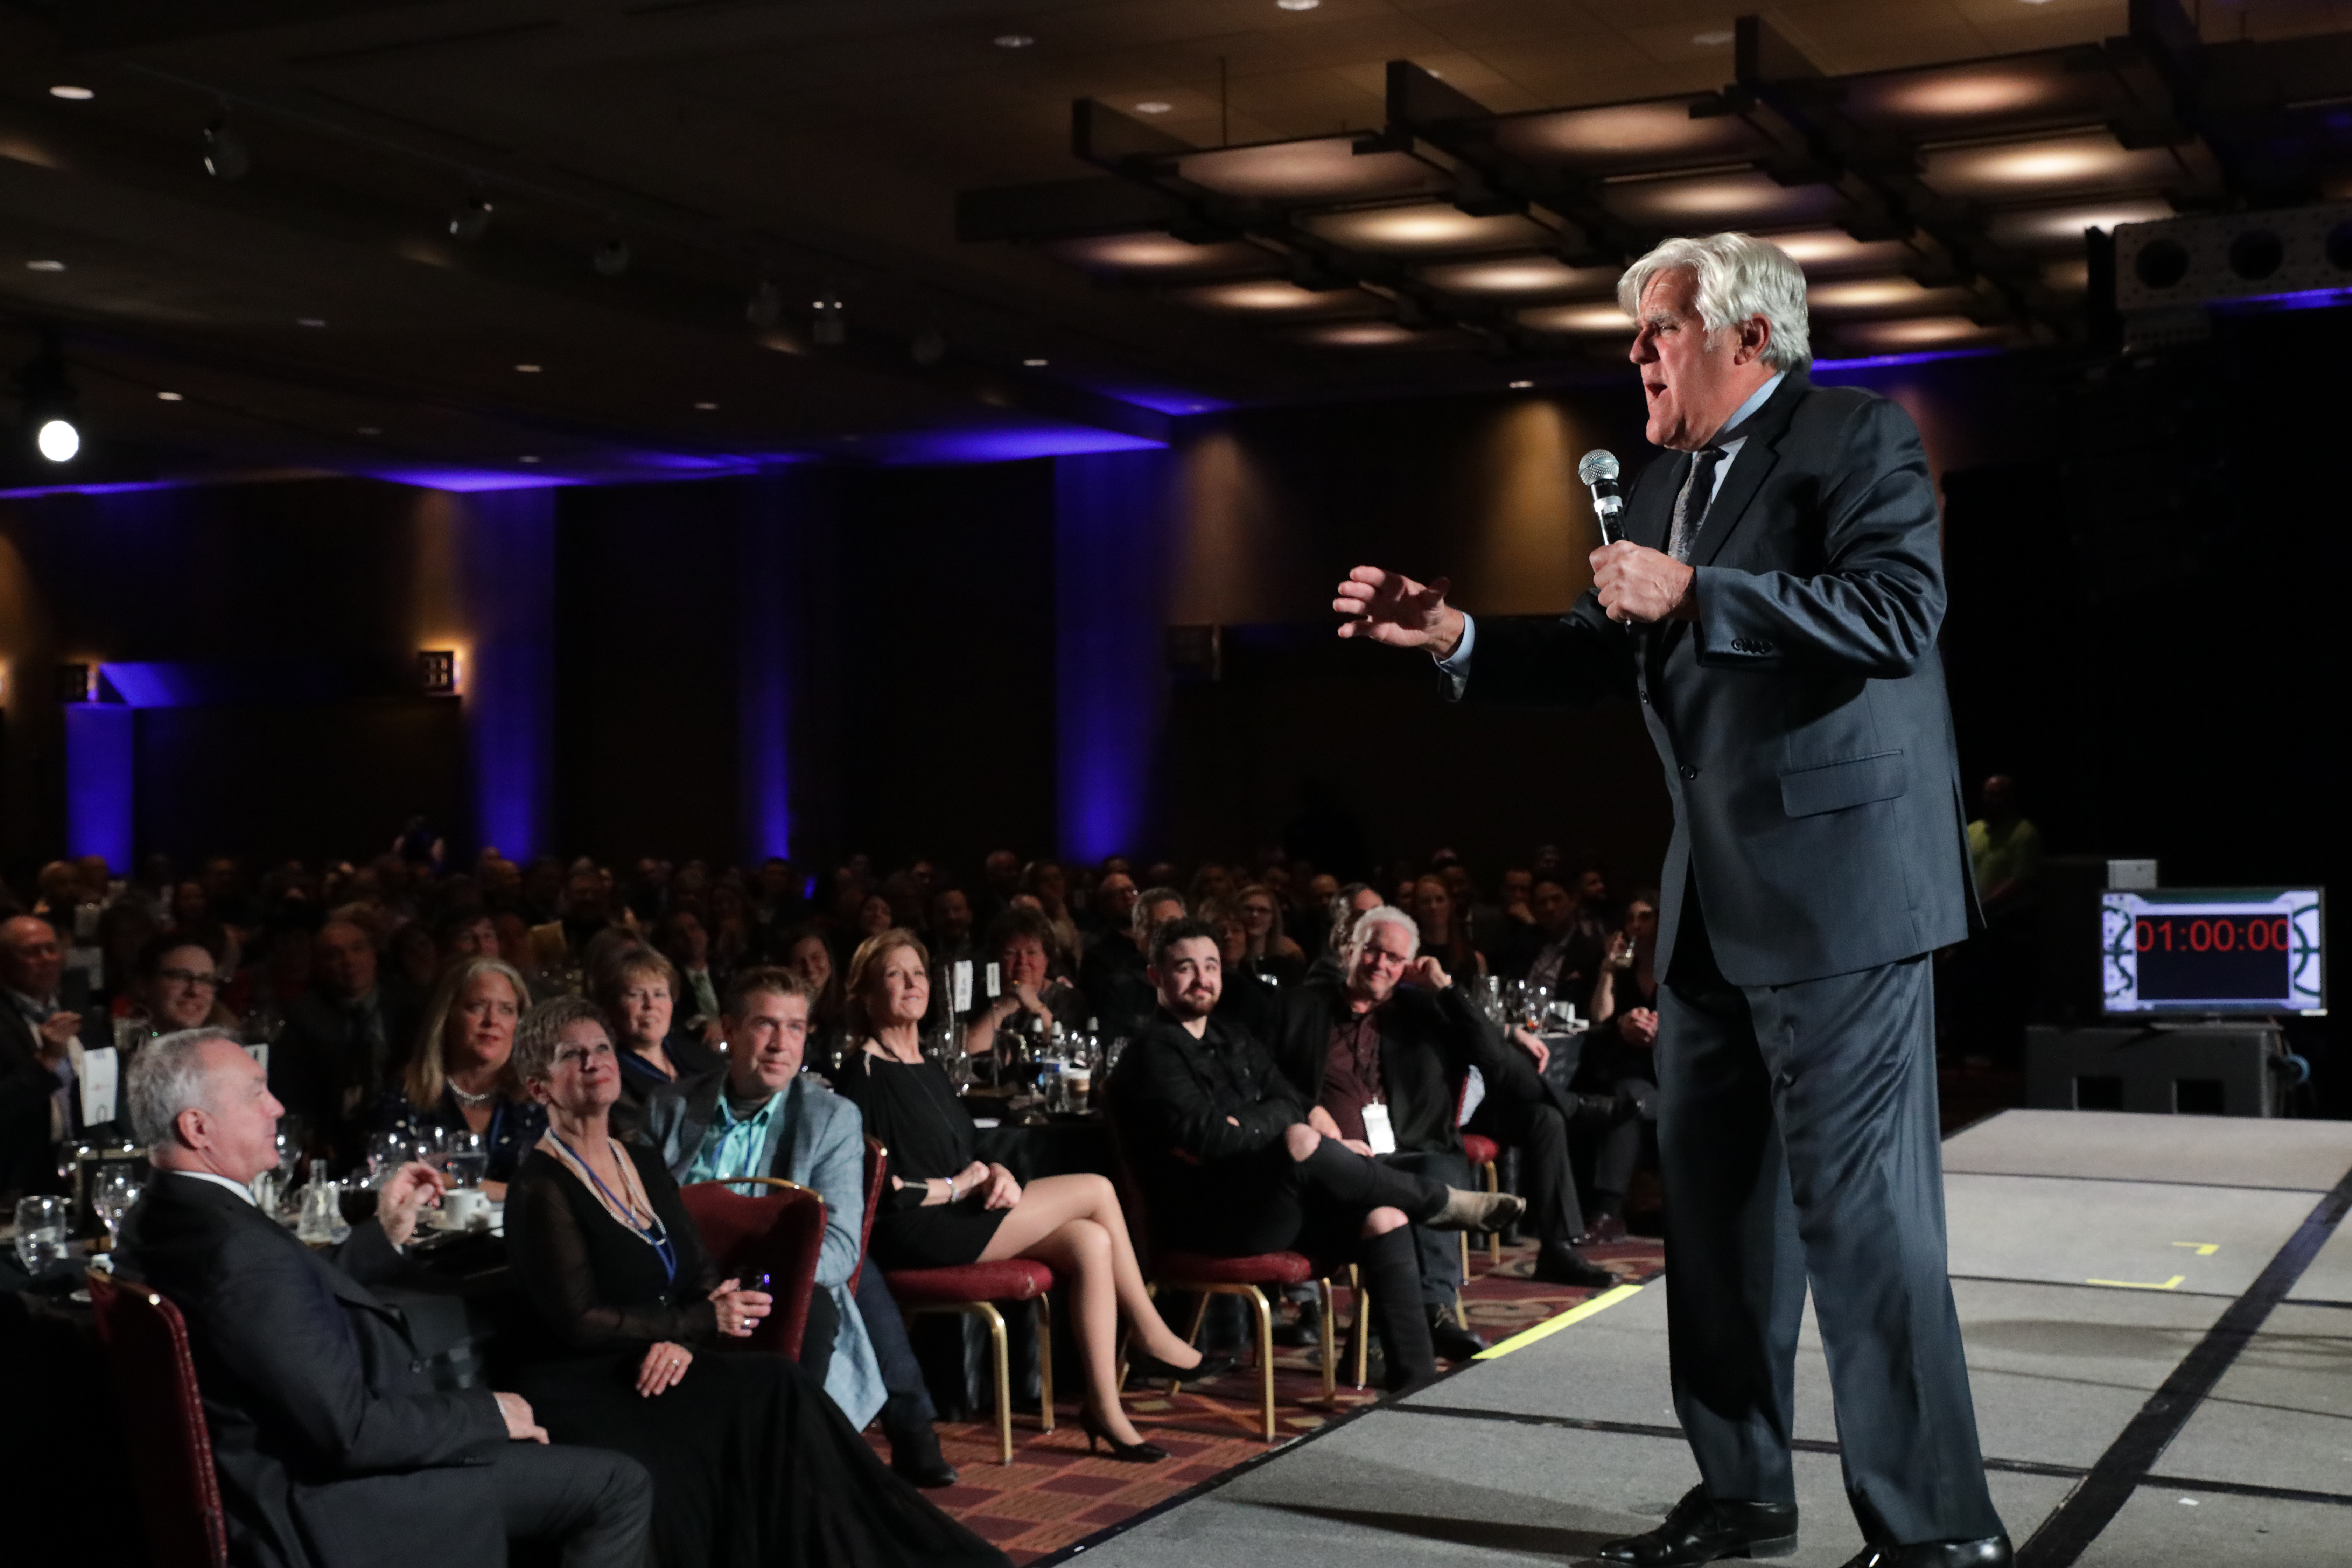 Comedy legend, Jay Leno performed at the Grand Slam Charity Jam. Photo by Erol Reyal.